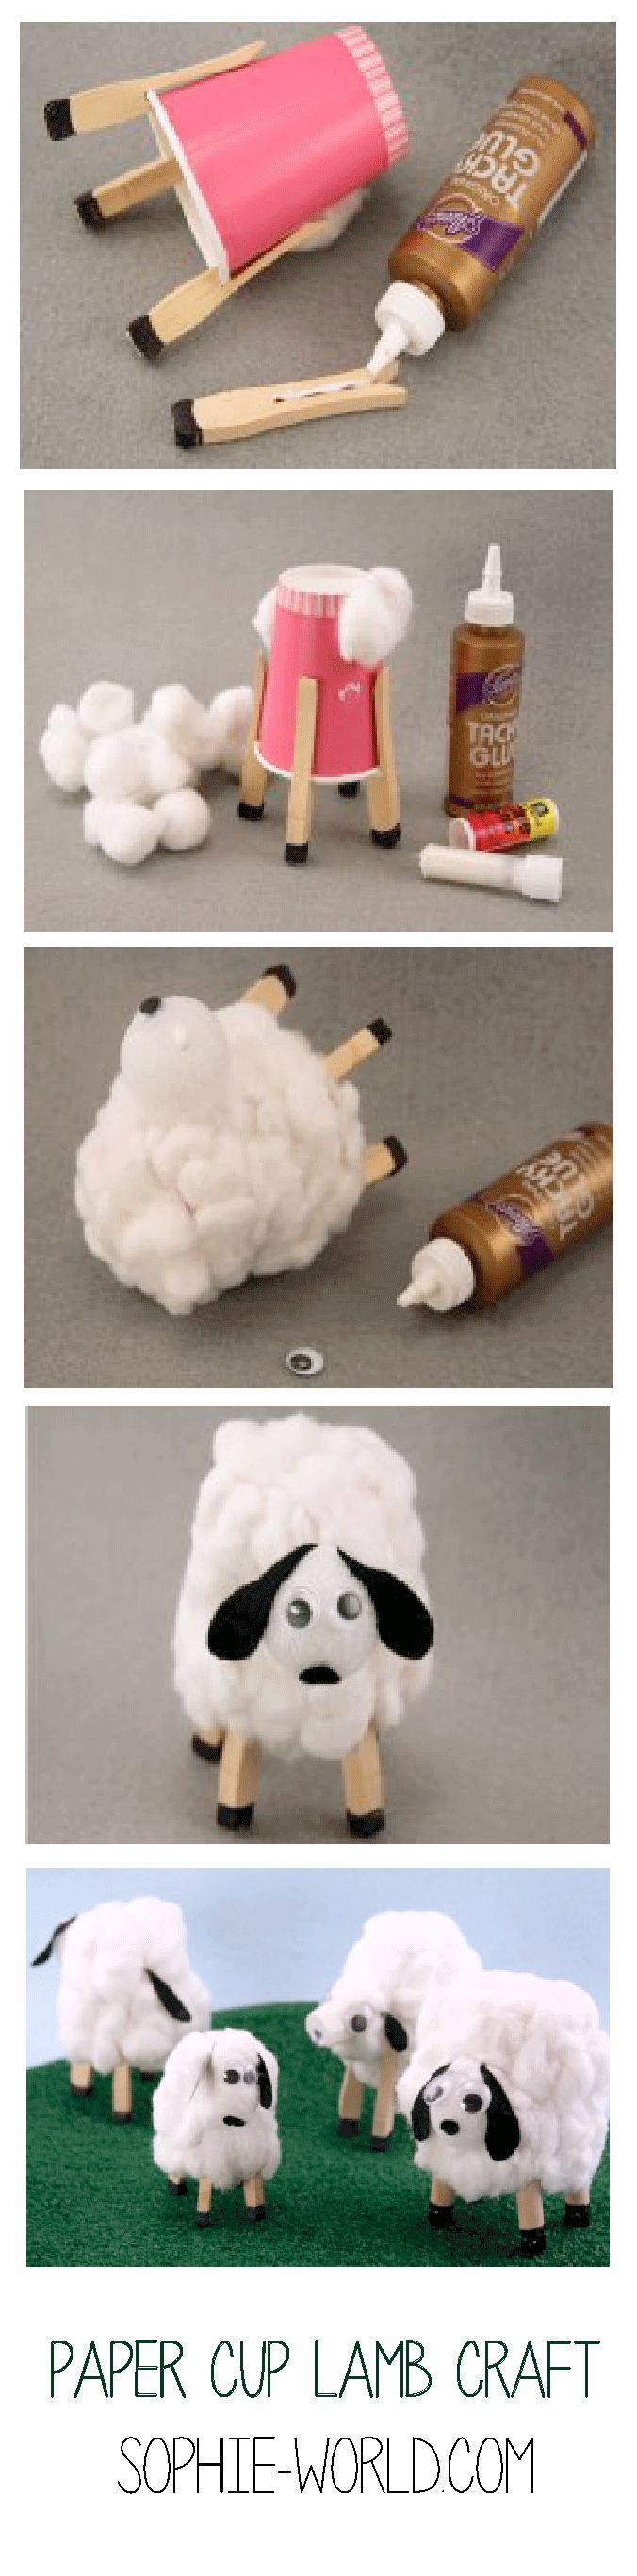 Spring into spring with these amazingly cute, fluffy lambs! This craft is…